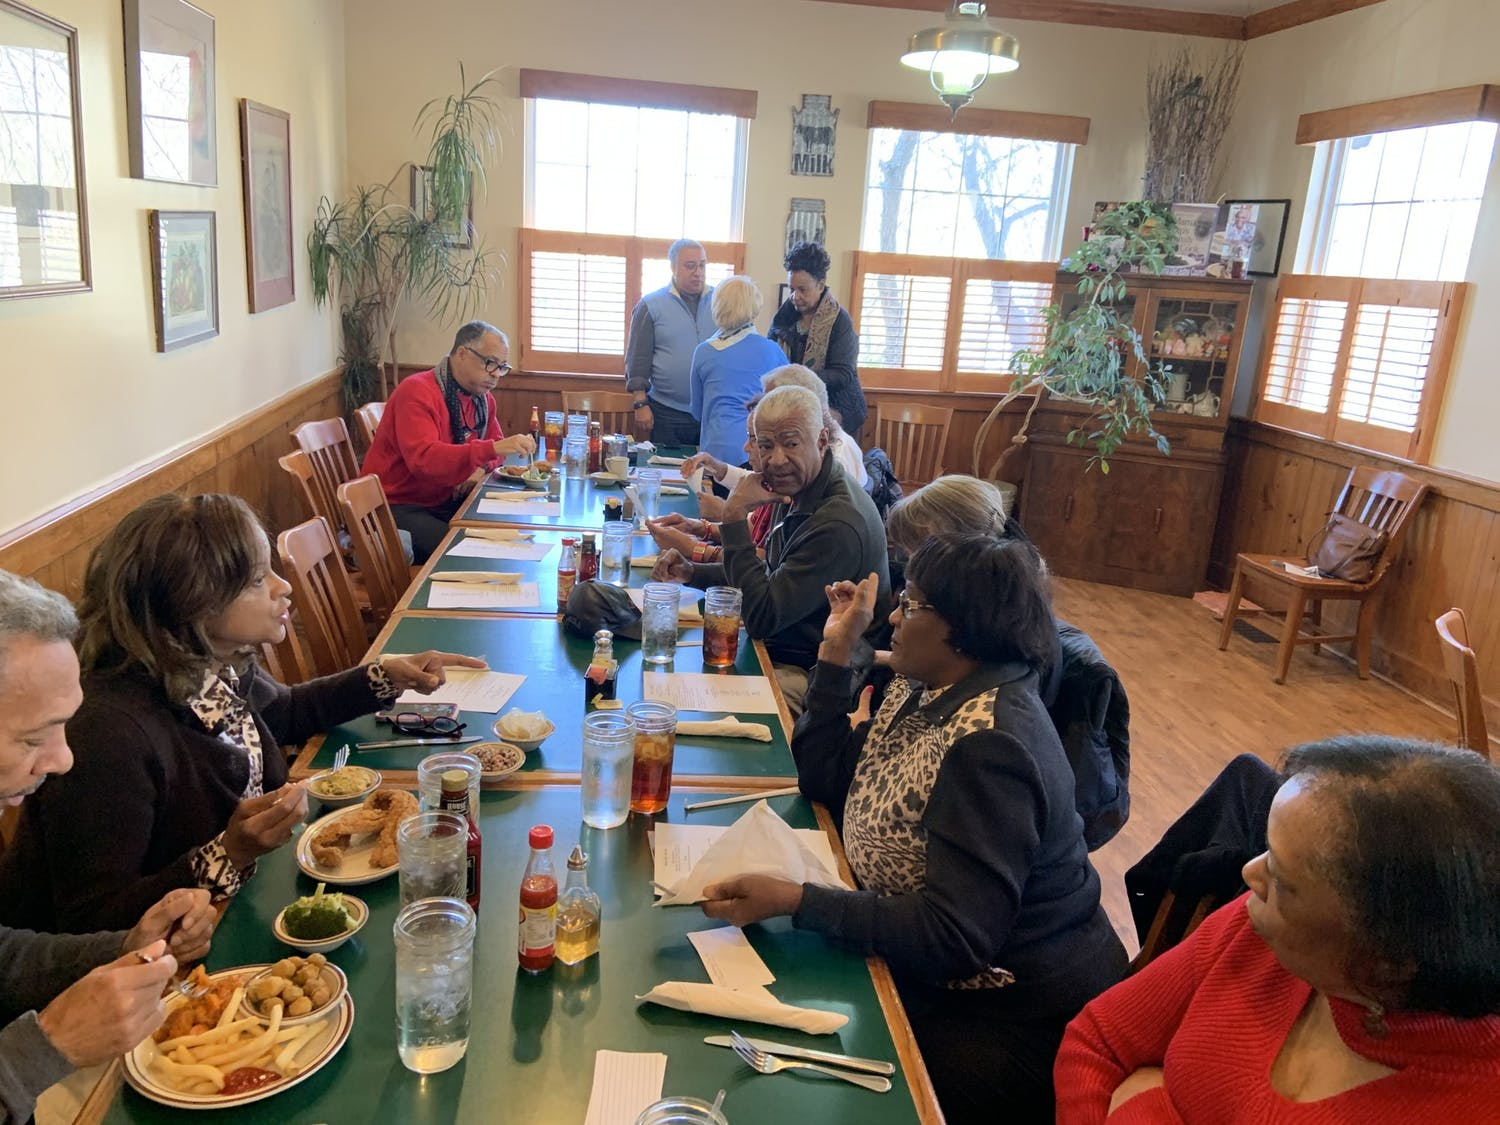 Some of the Black Pioneers and their spouses meet for lunch at Mama Dip's in early 2020. Photo courtesy of Walter A. Jackson.